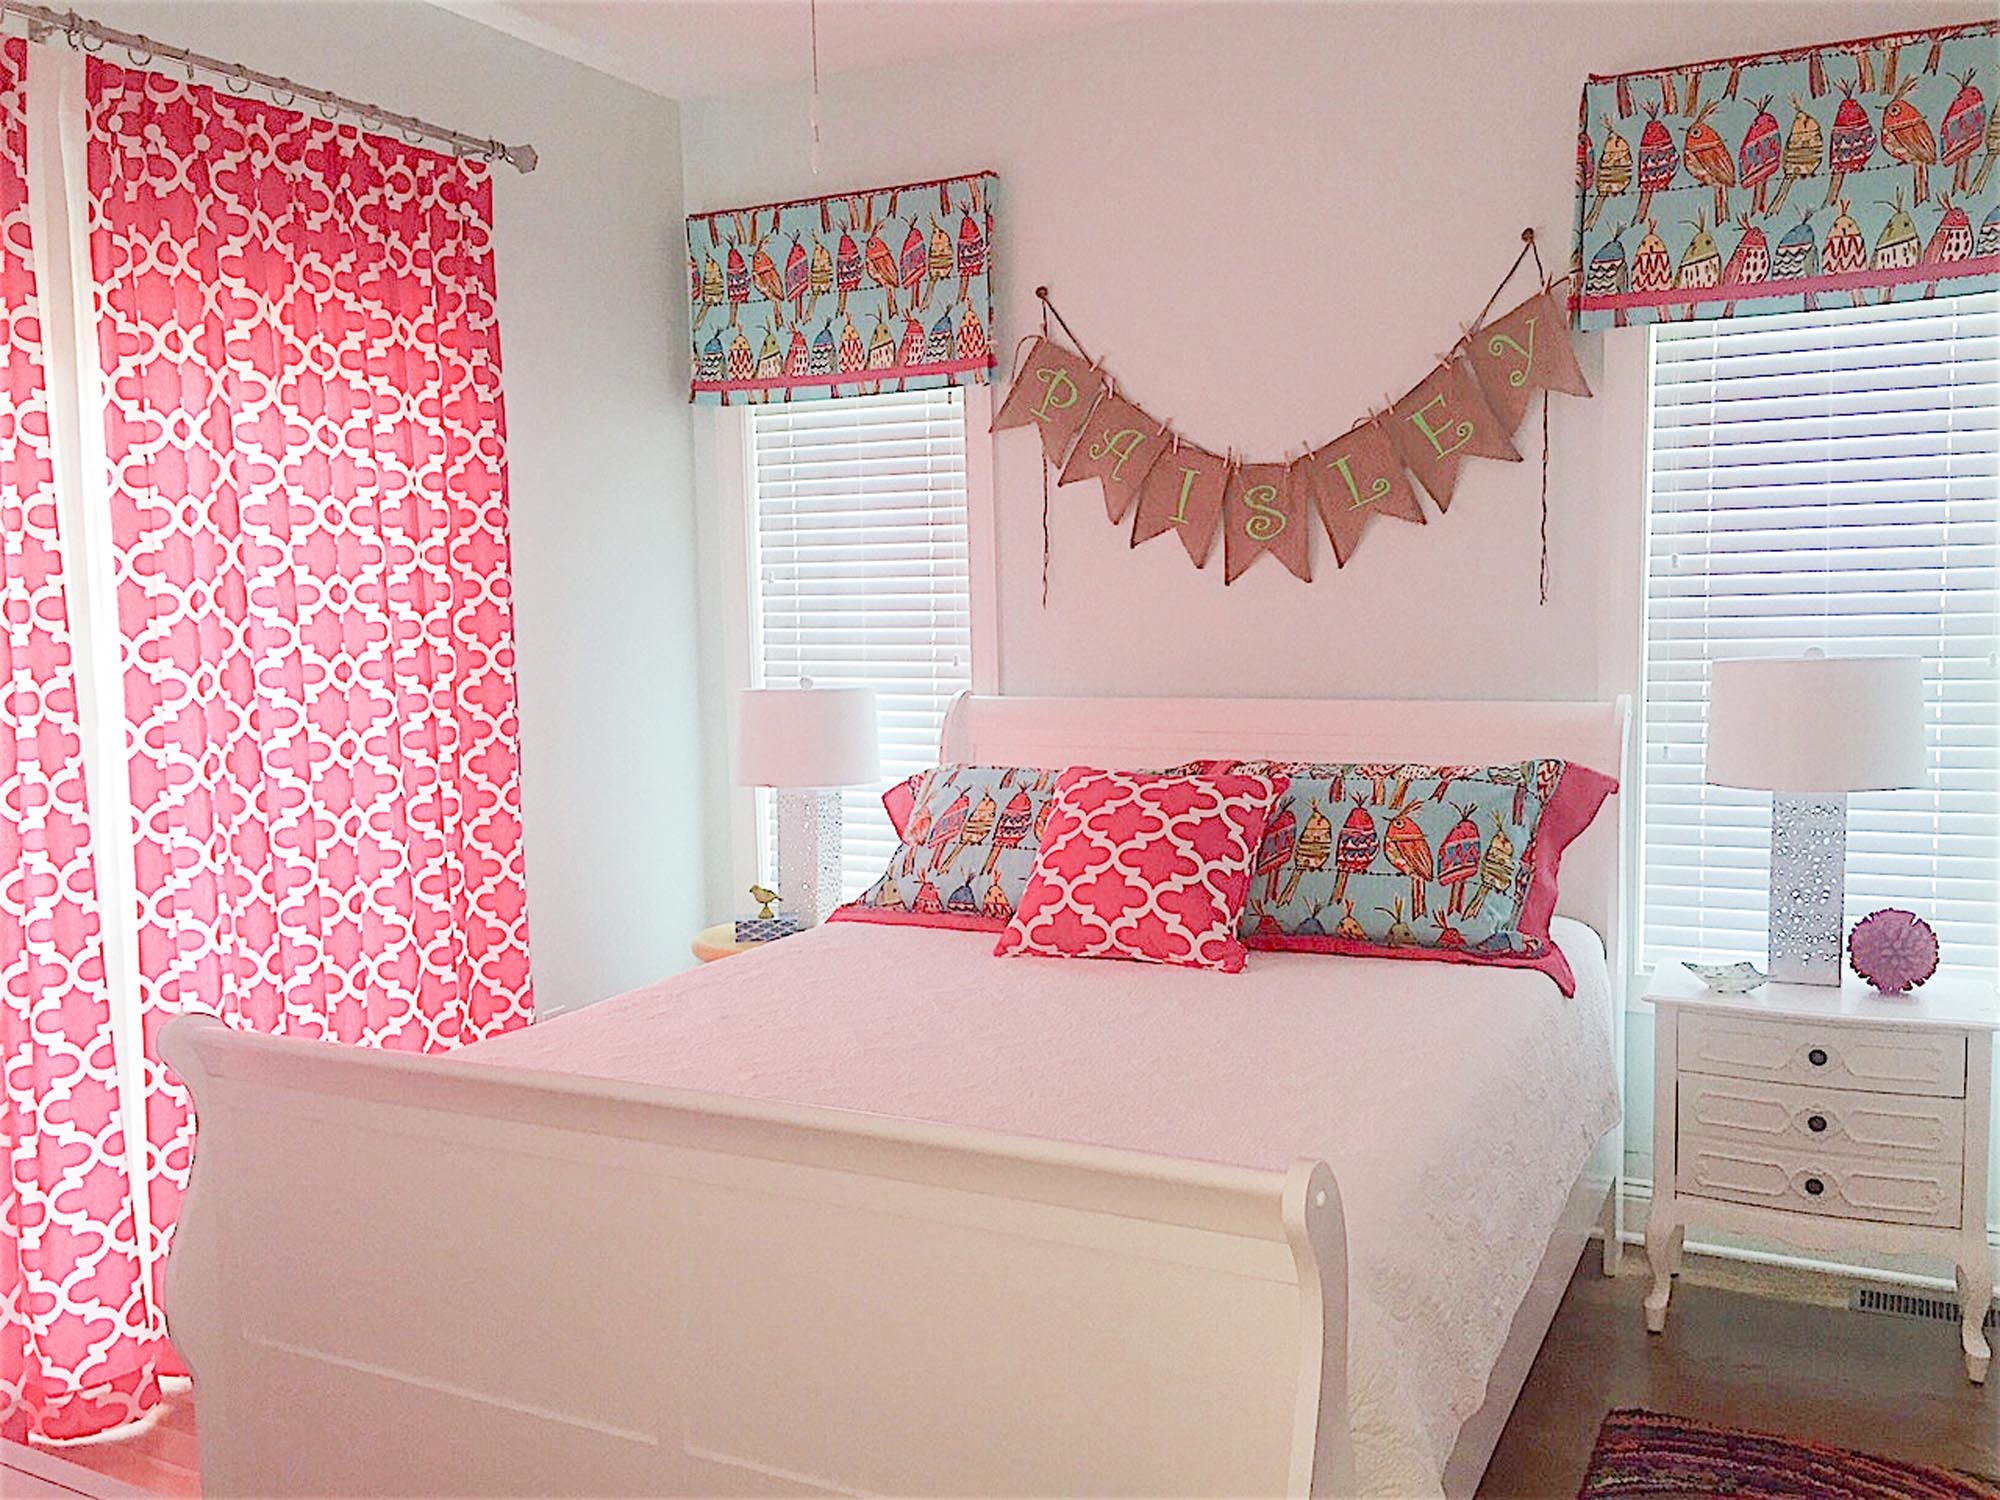 Pink bedroom for a girl with bird valances